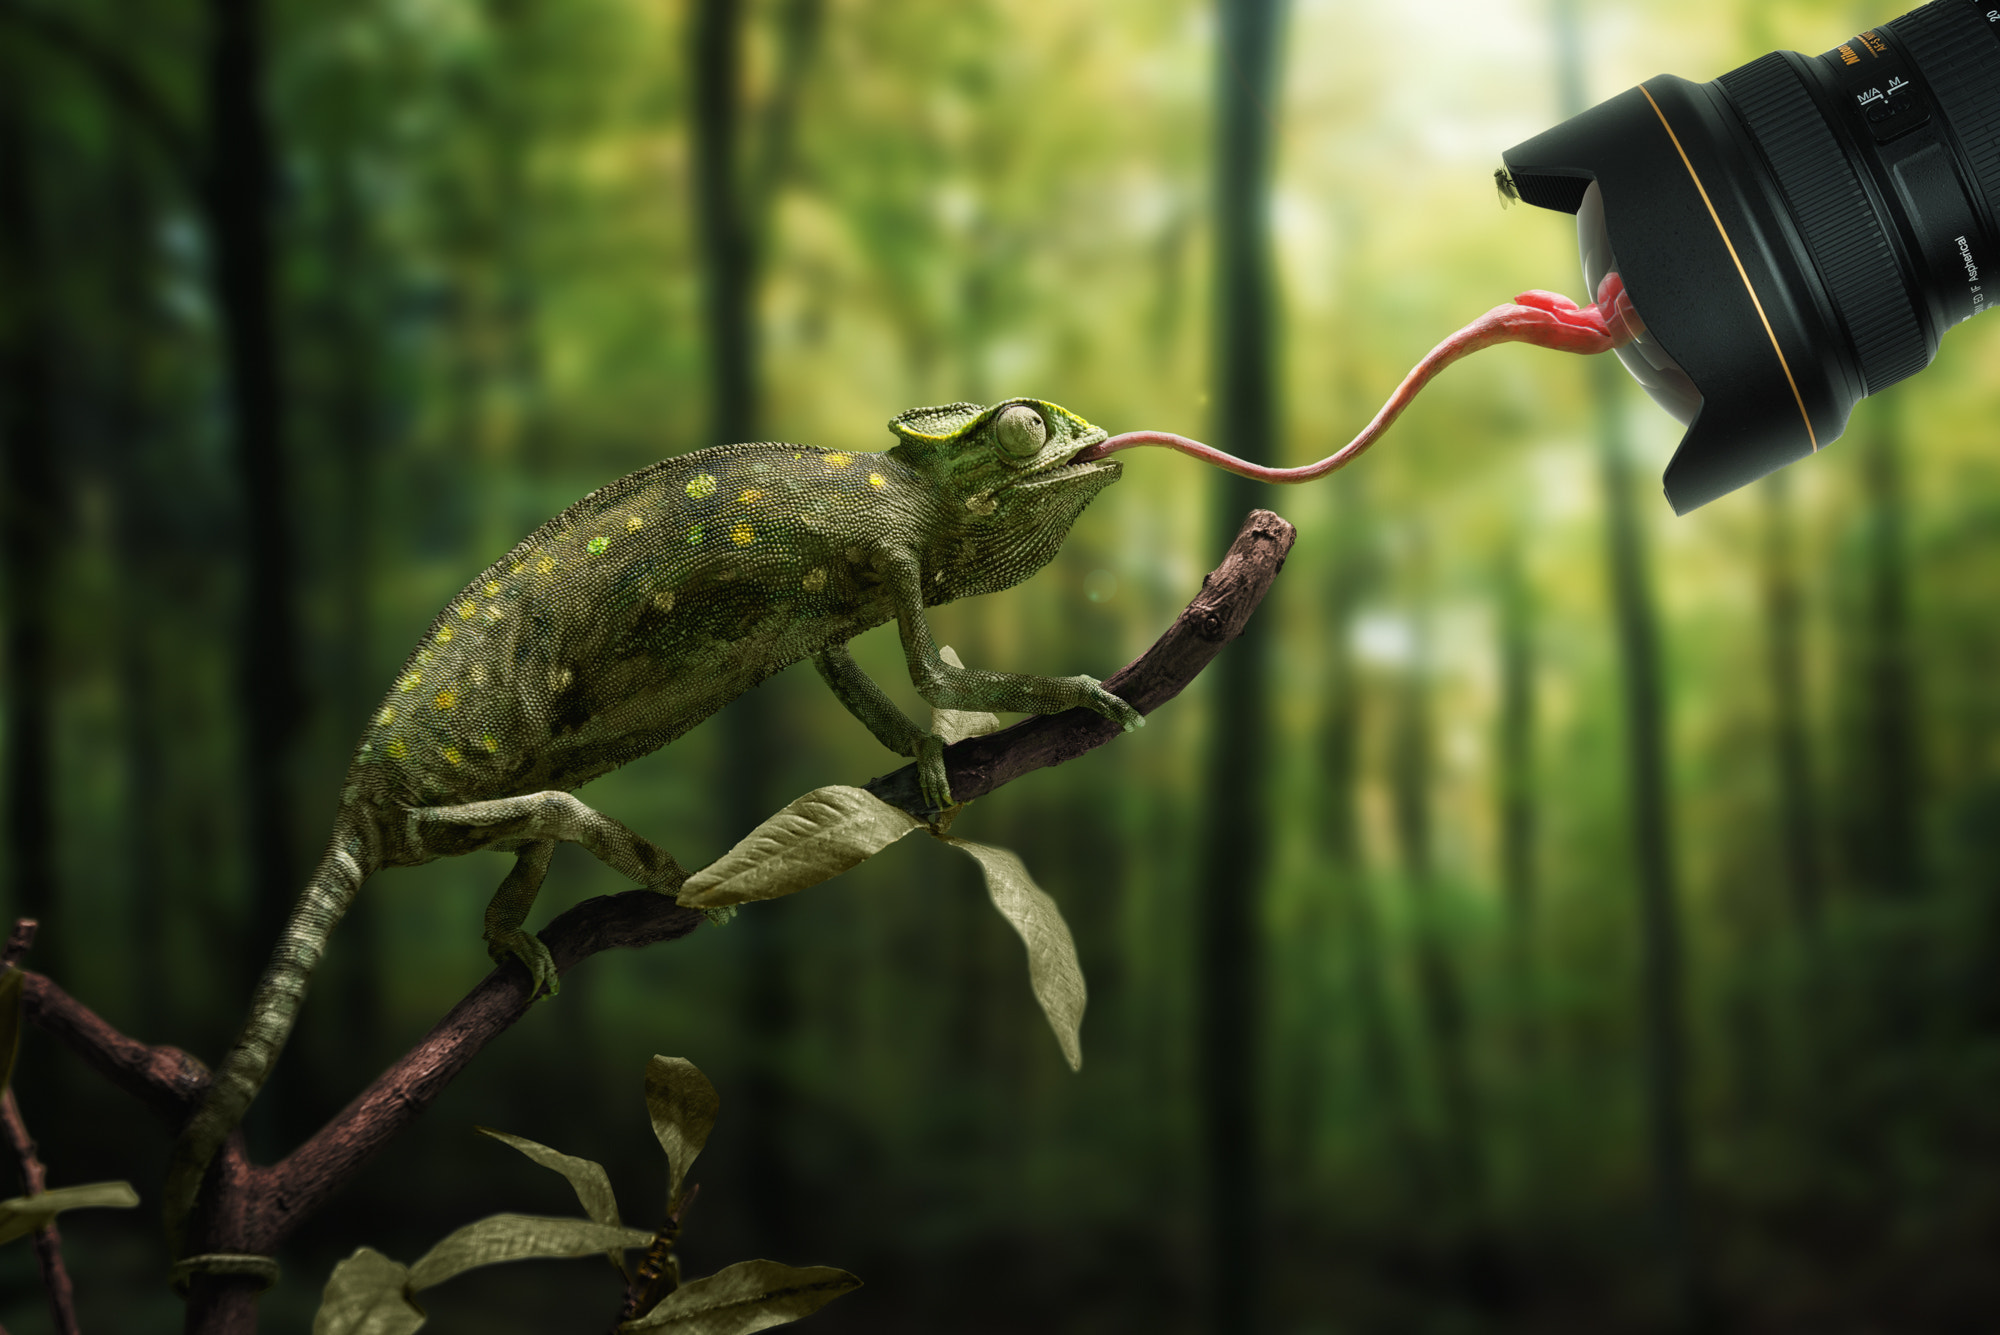 Photograph Just a chameleon action shooting with bait-lens by John Wilhelm is a photoholic on 500px